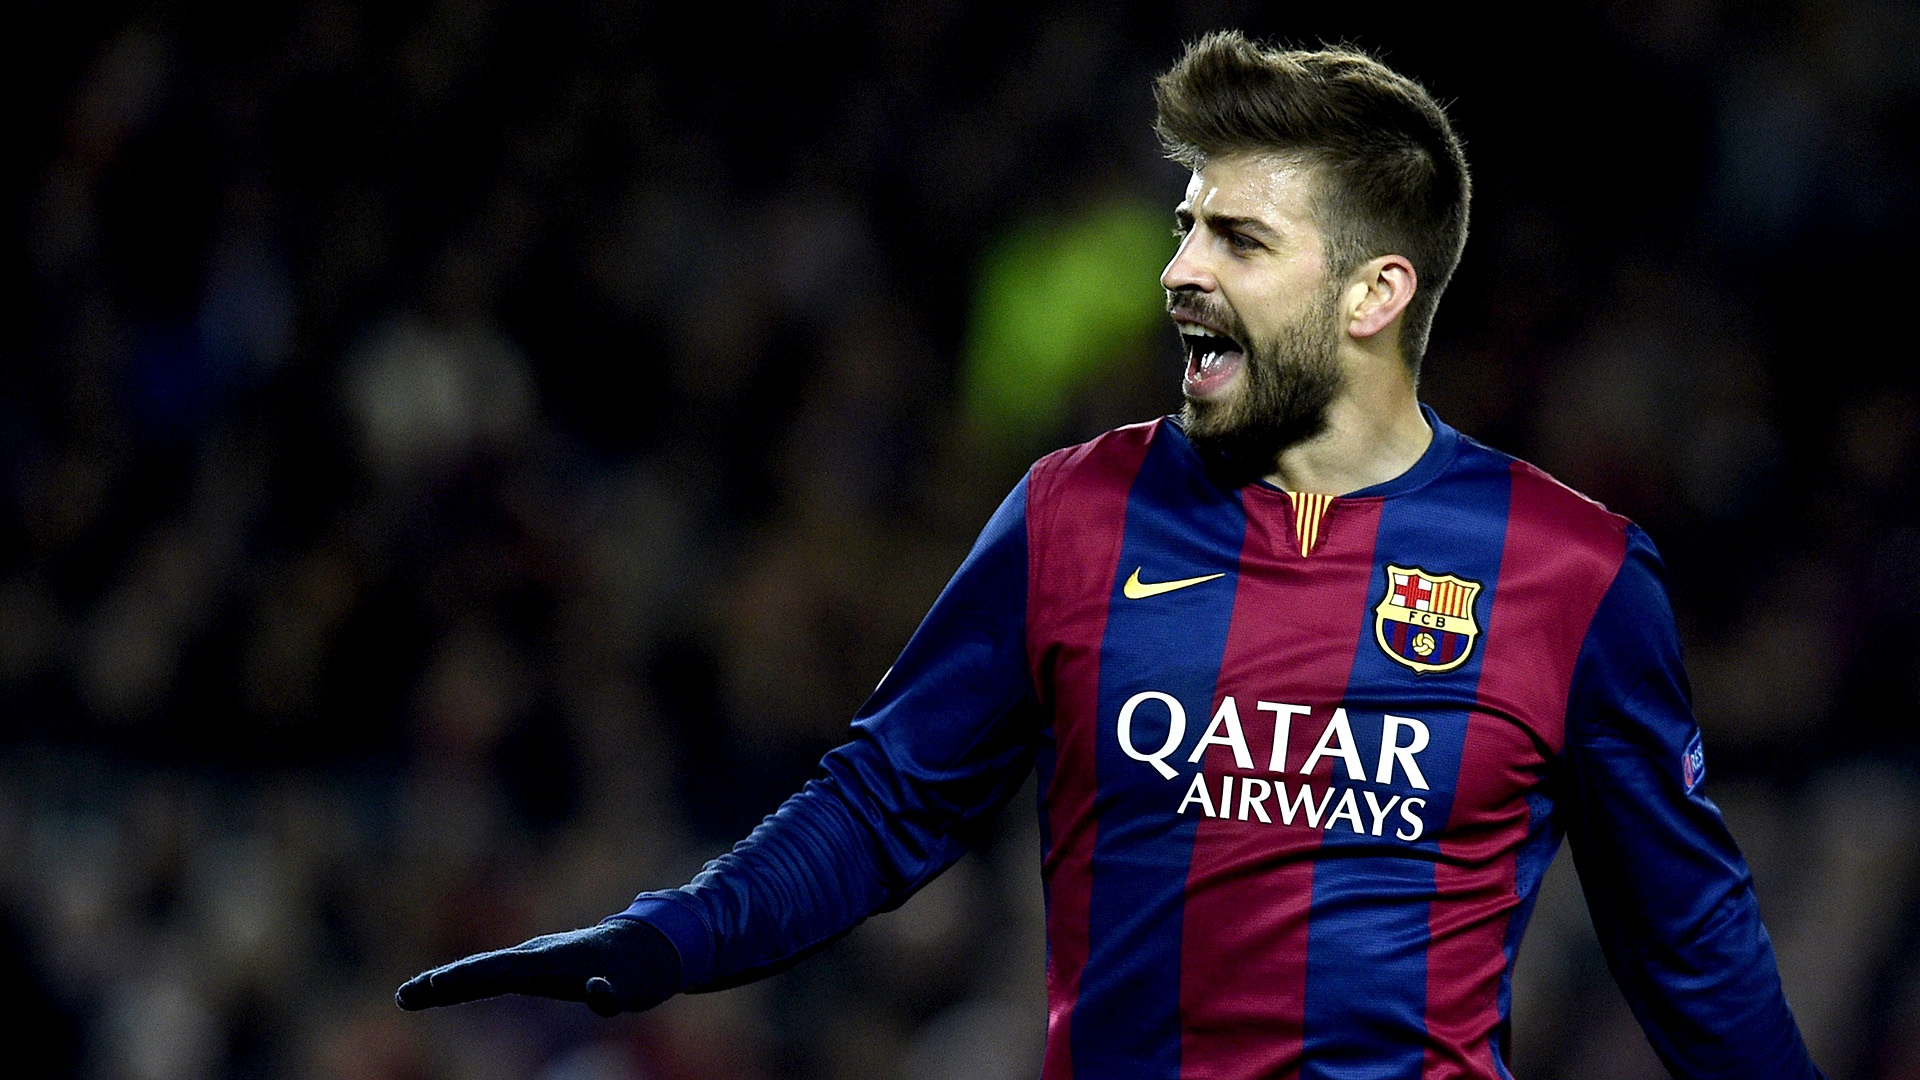 Gerard Pique Wallpapers s Backgrounds